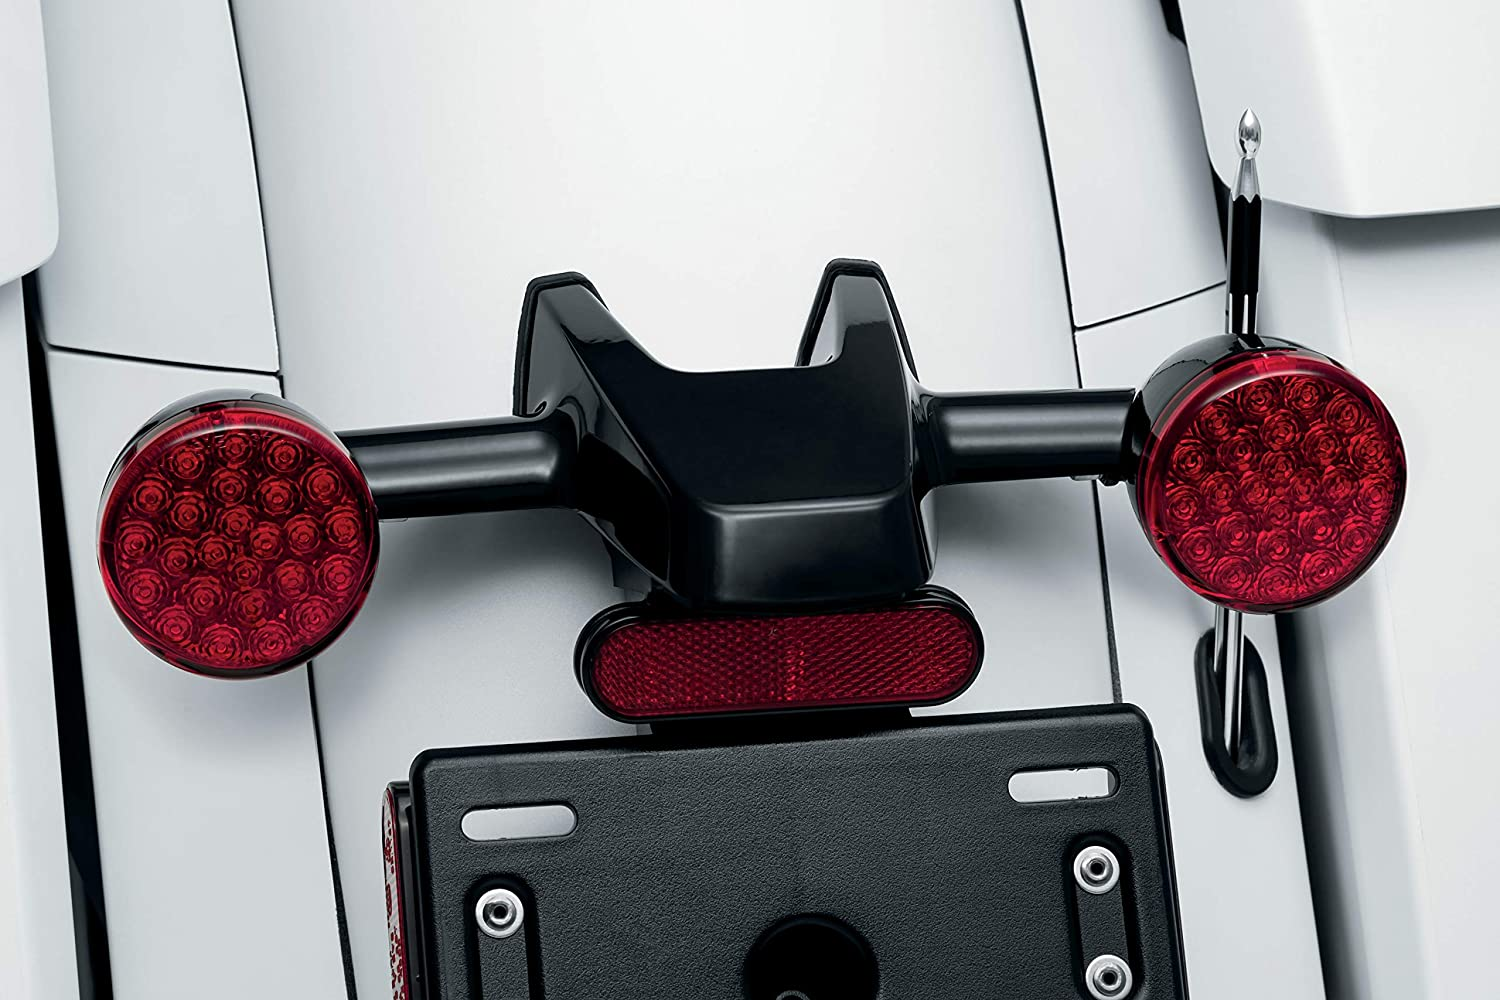 1 Pair Kellermann Atto Rear Turn Signal Adapters for Indian Motorcycles Challenger and Chieftain Gloss Black Kuryakyn 2843 Motorcycle Lighting Accessory